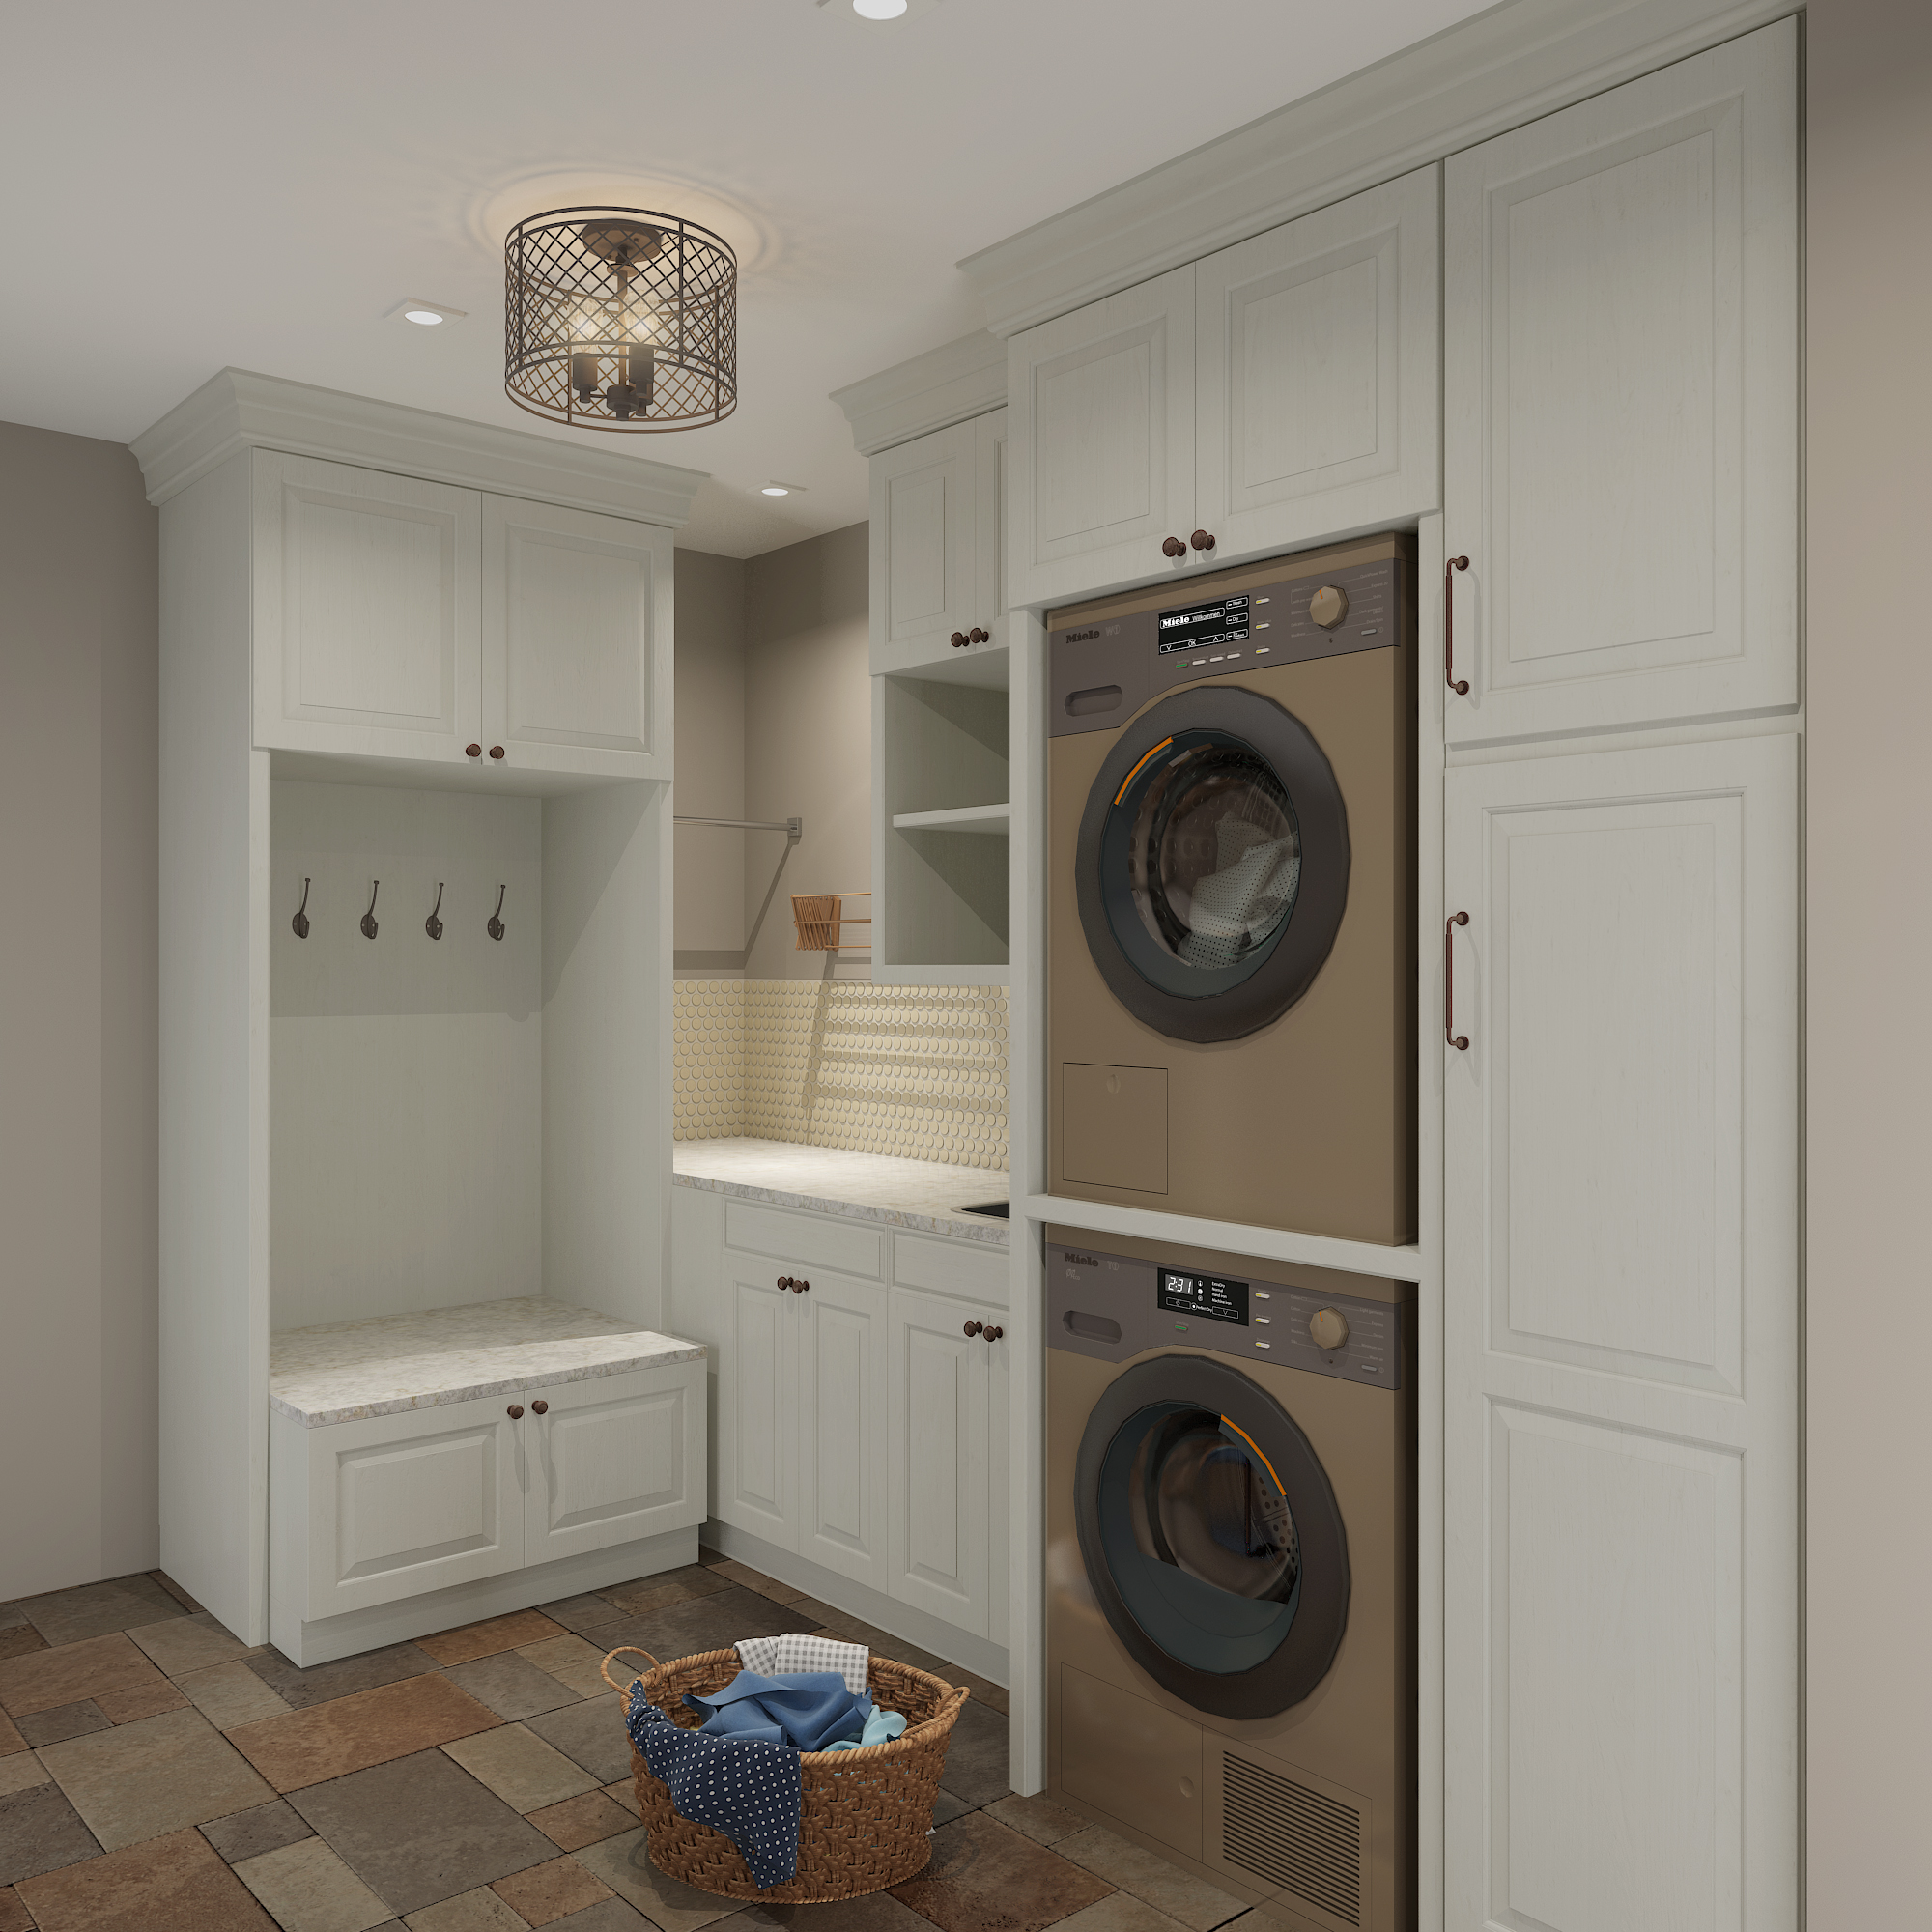 { Ash Grove Court  laundry room remodel design by April Force Pardoe Interiors.}